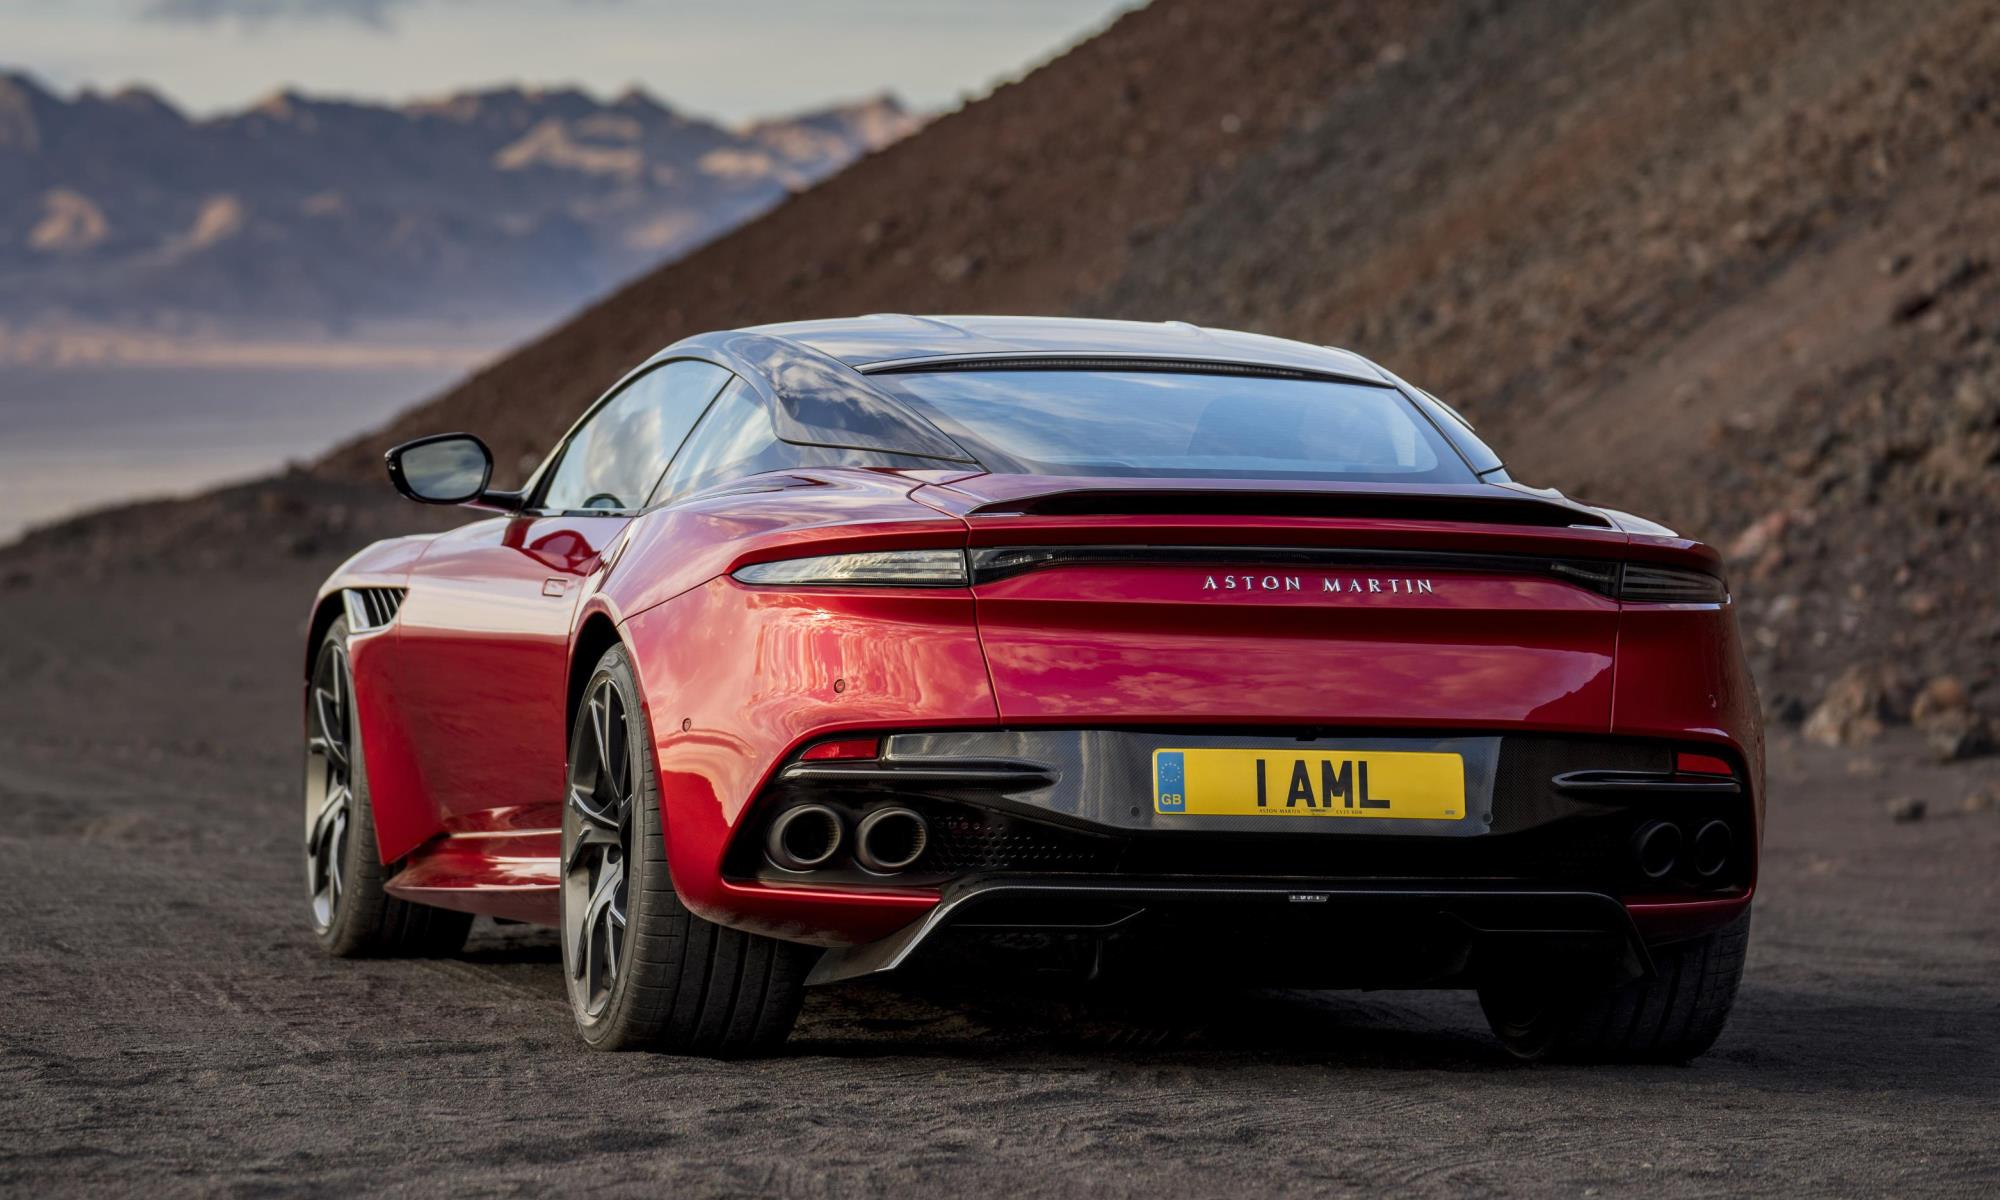 Aston Martin DBS Superleggera rear